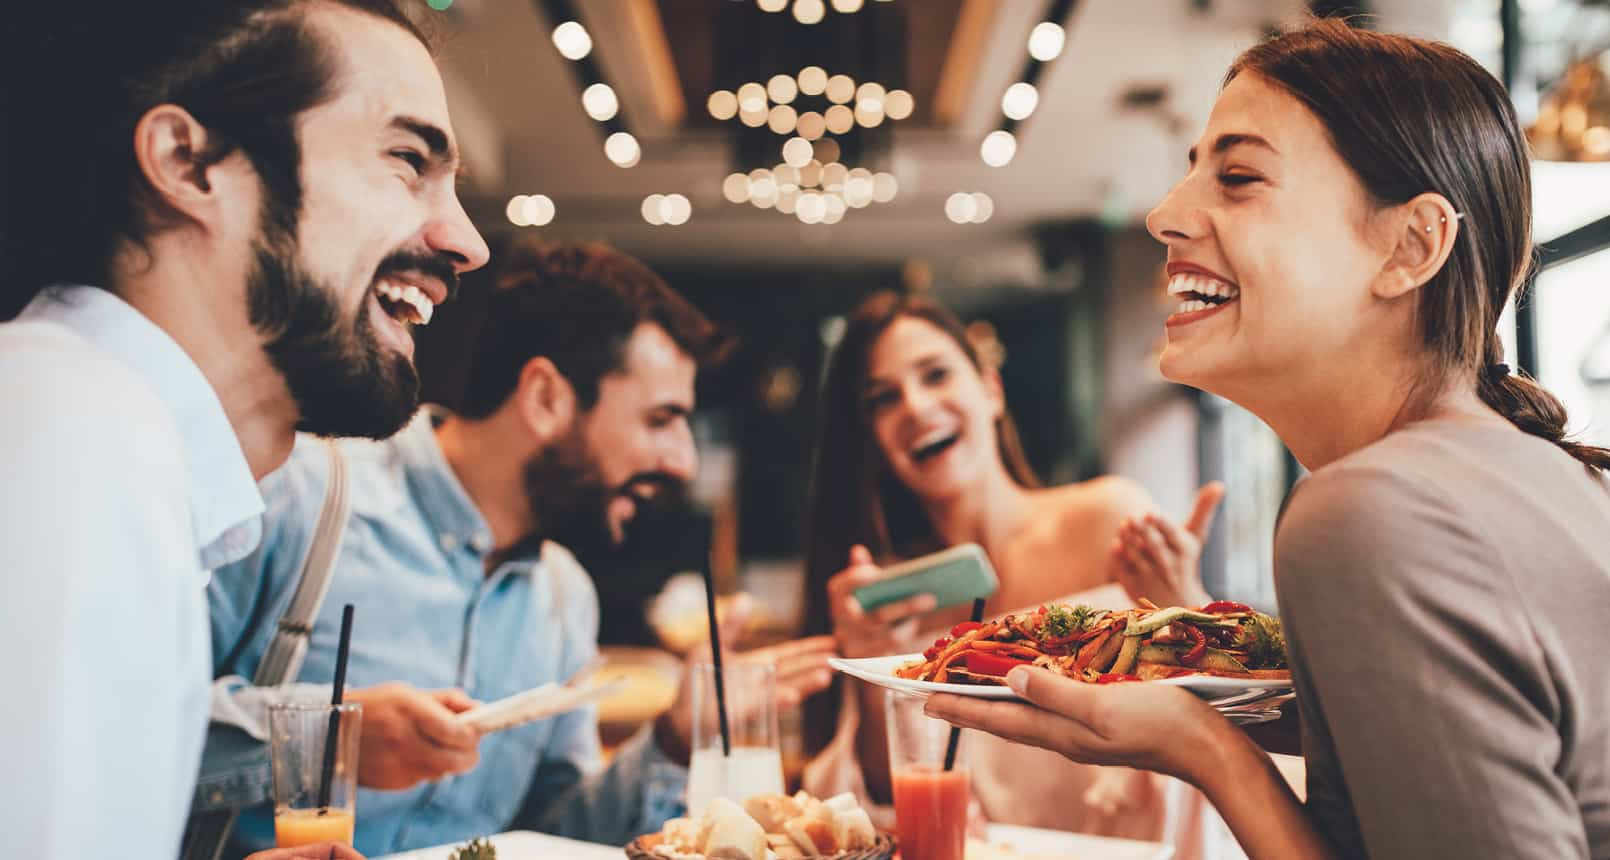 Article 5 Restaurant Food Guides